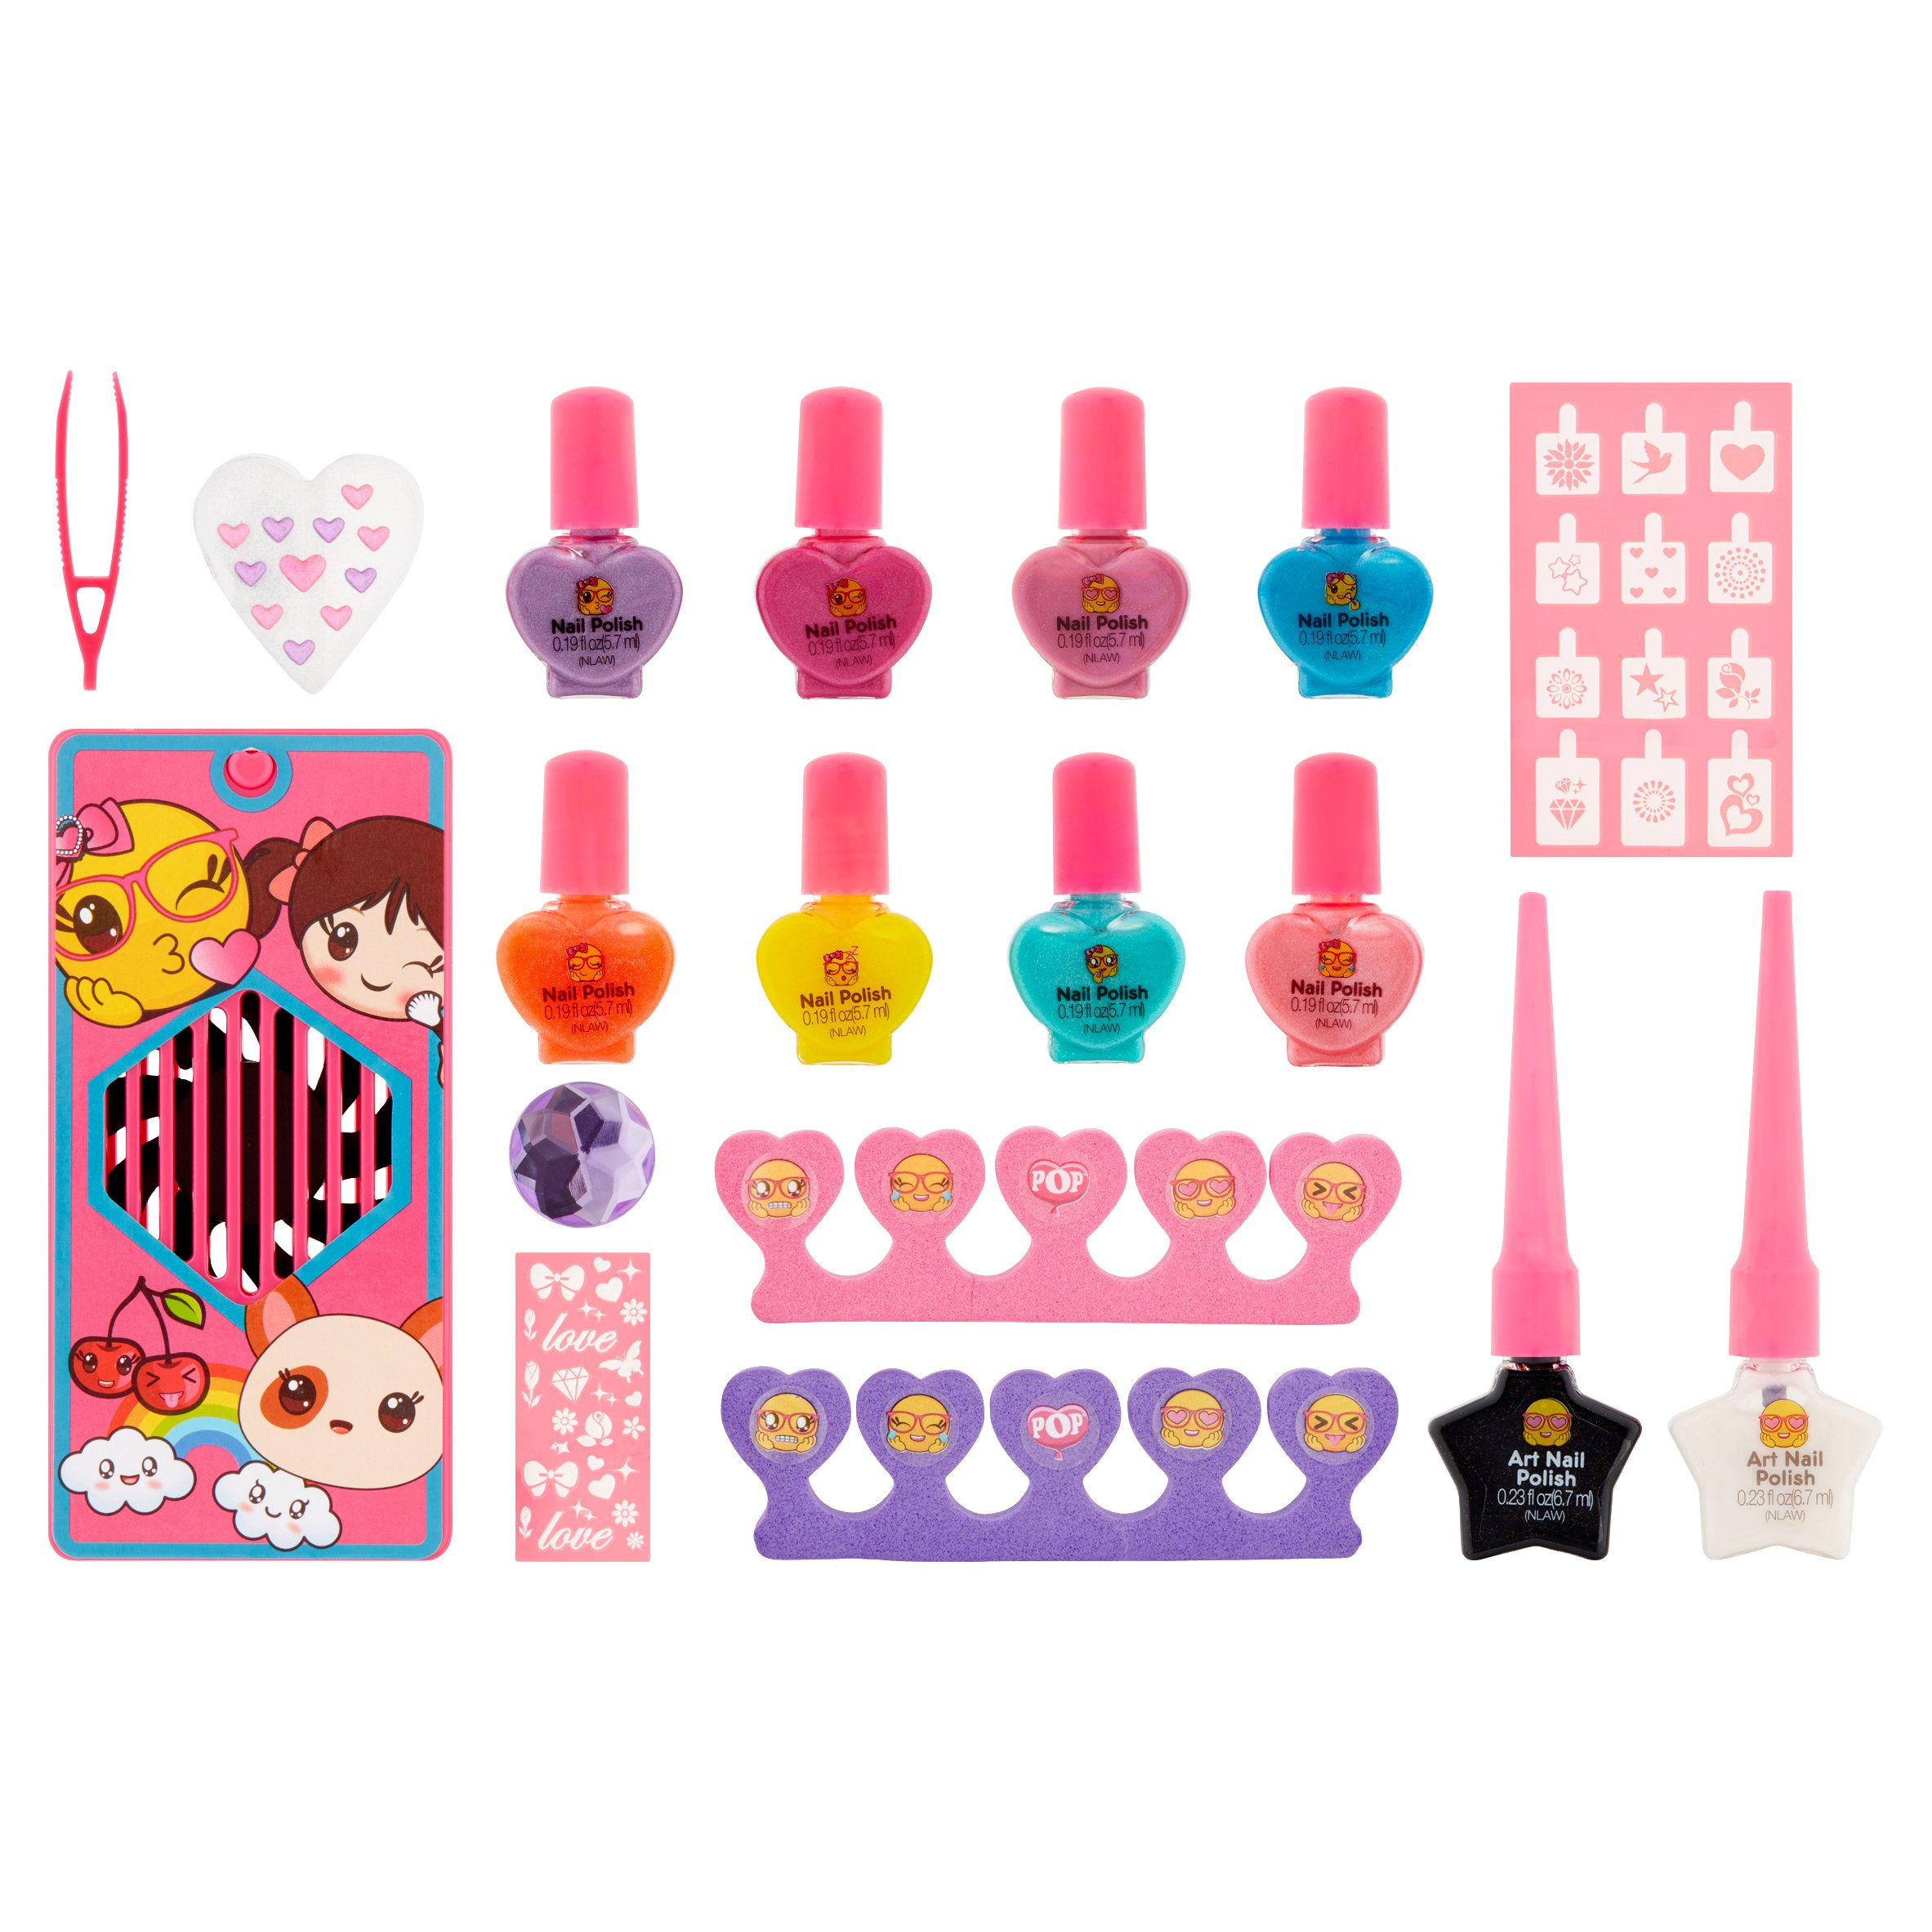 Pop Magical Manicure Nail Salon Collection, 18 piece